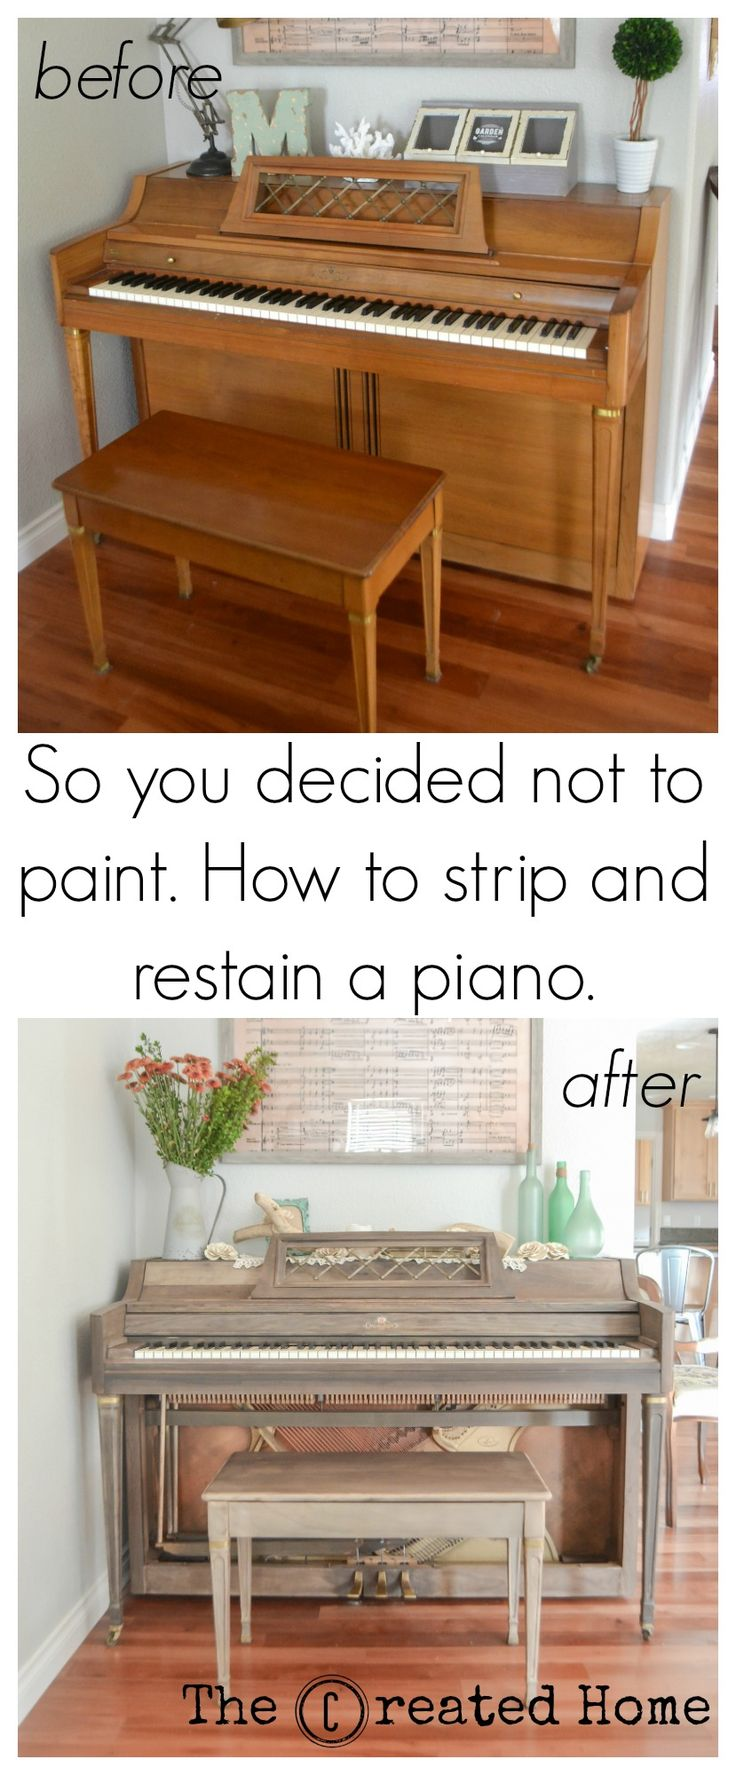 How to strip and refinish a piano. Featuring Weatherwood Stains.